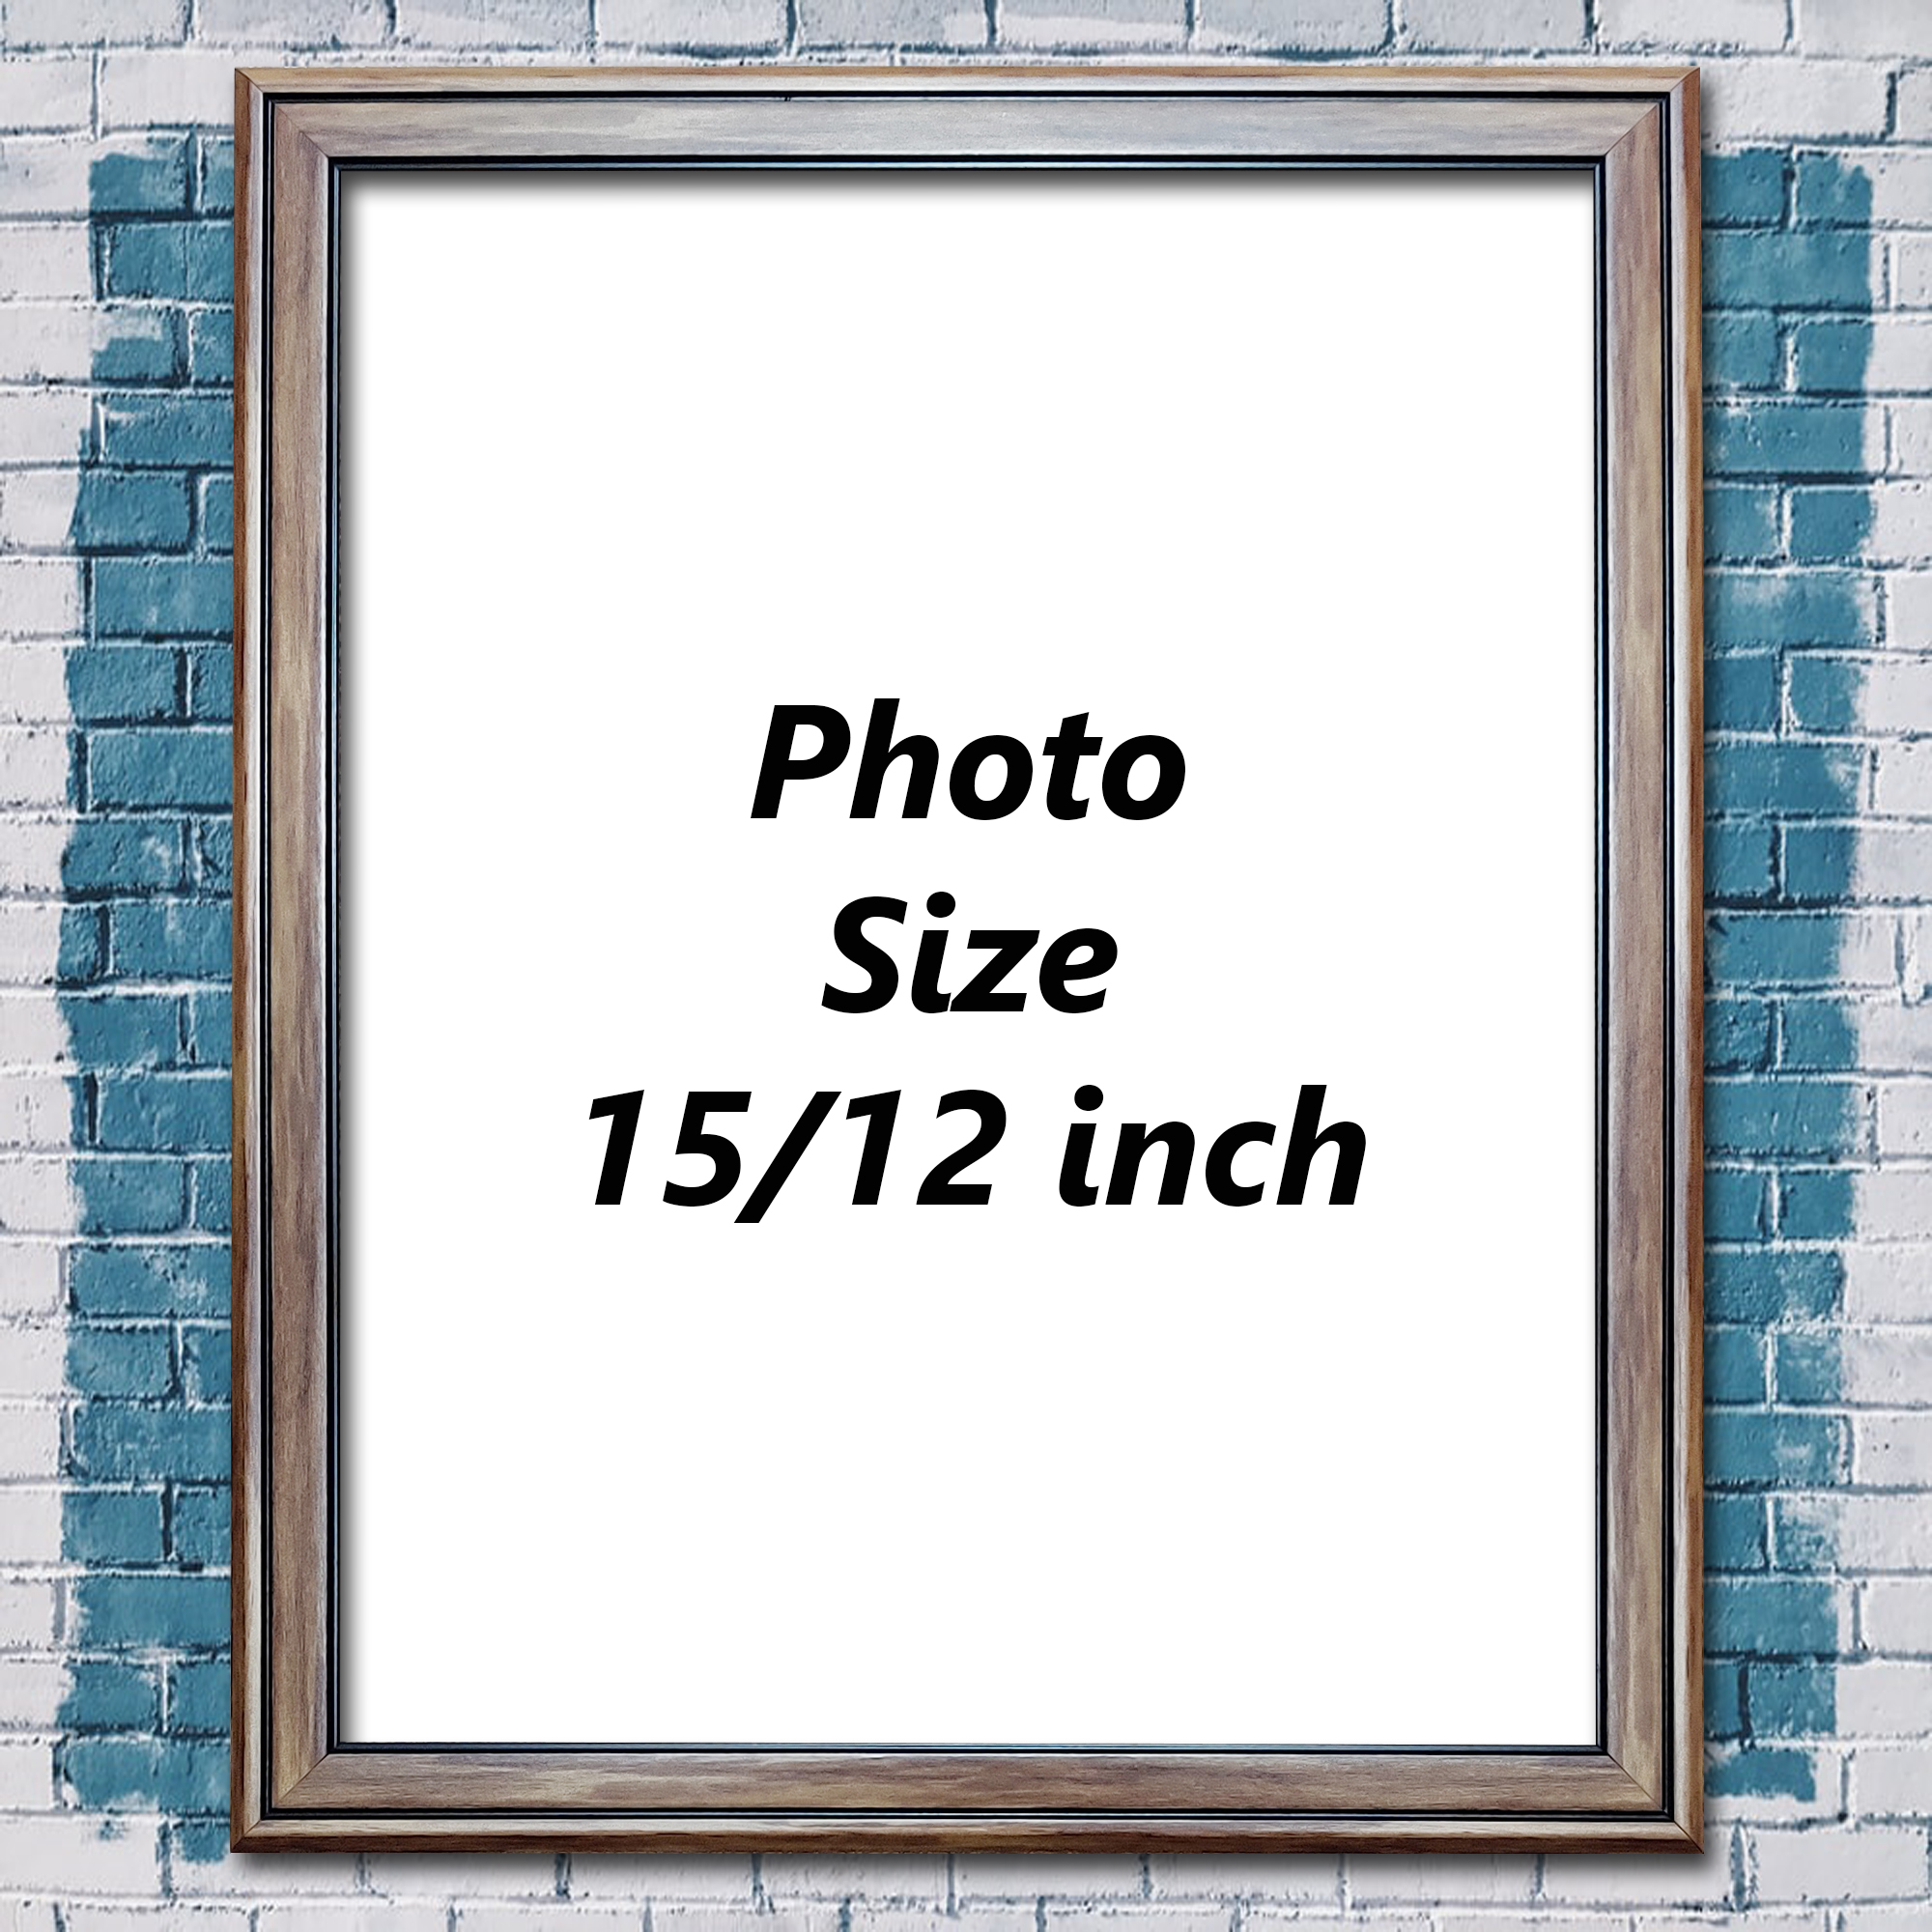 Photo Frame 15/12 Inch BN11 (Glossy Lamination)